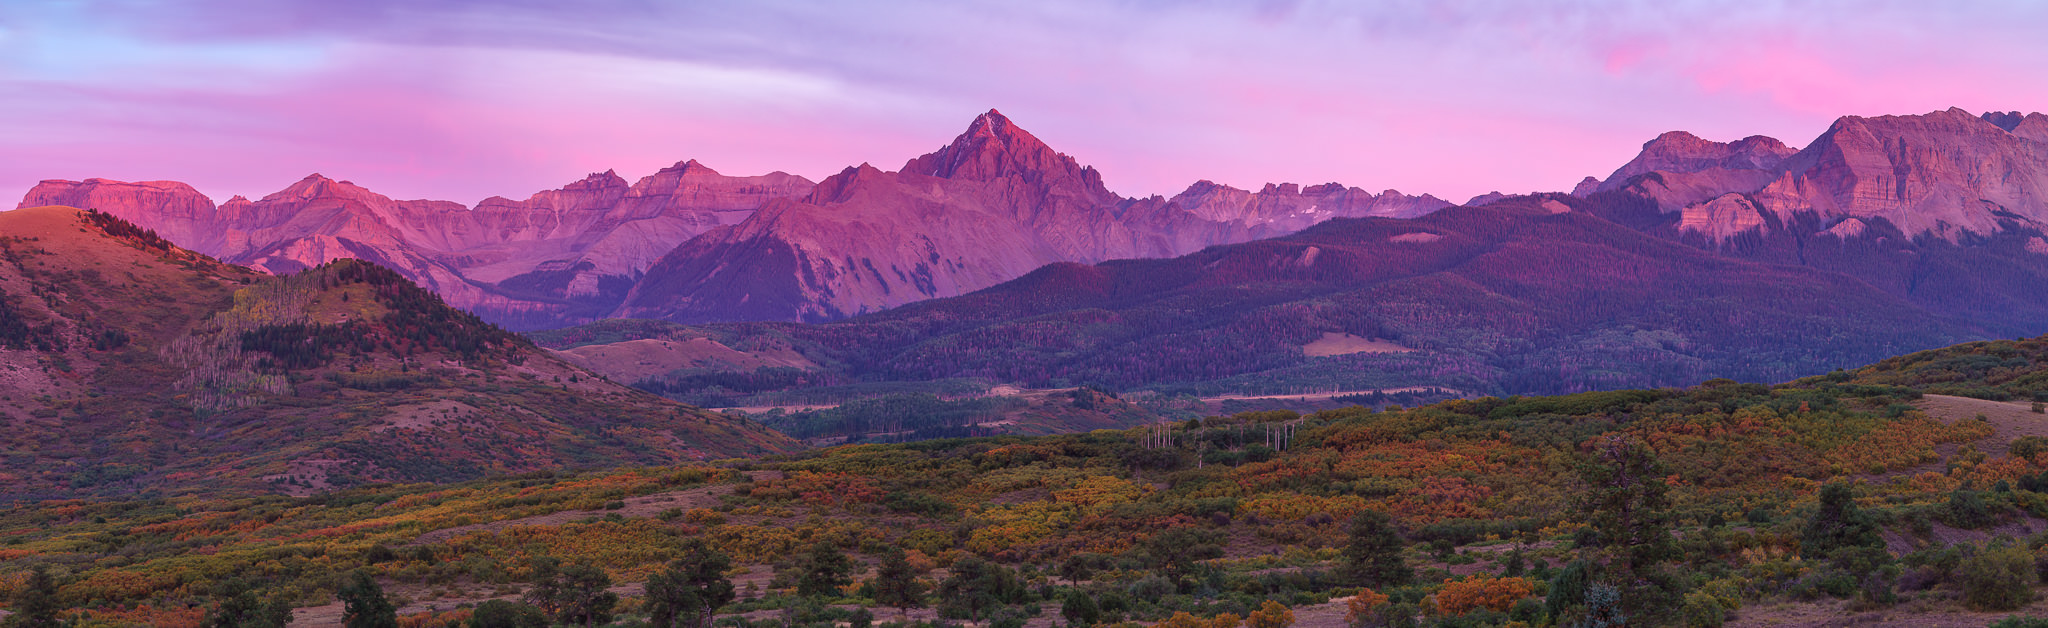 Mt Sneffels after sunset